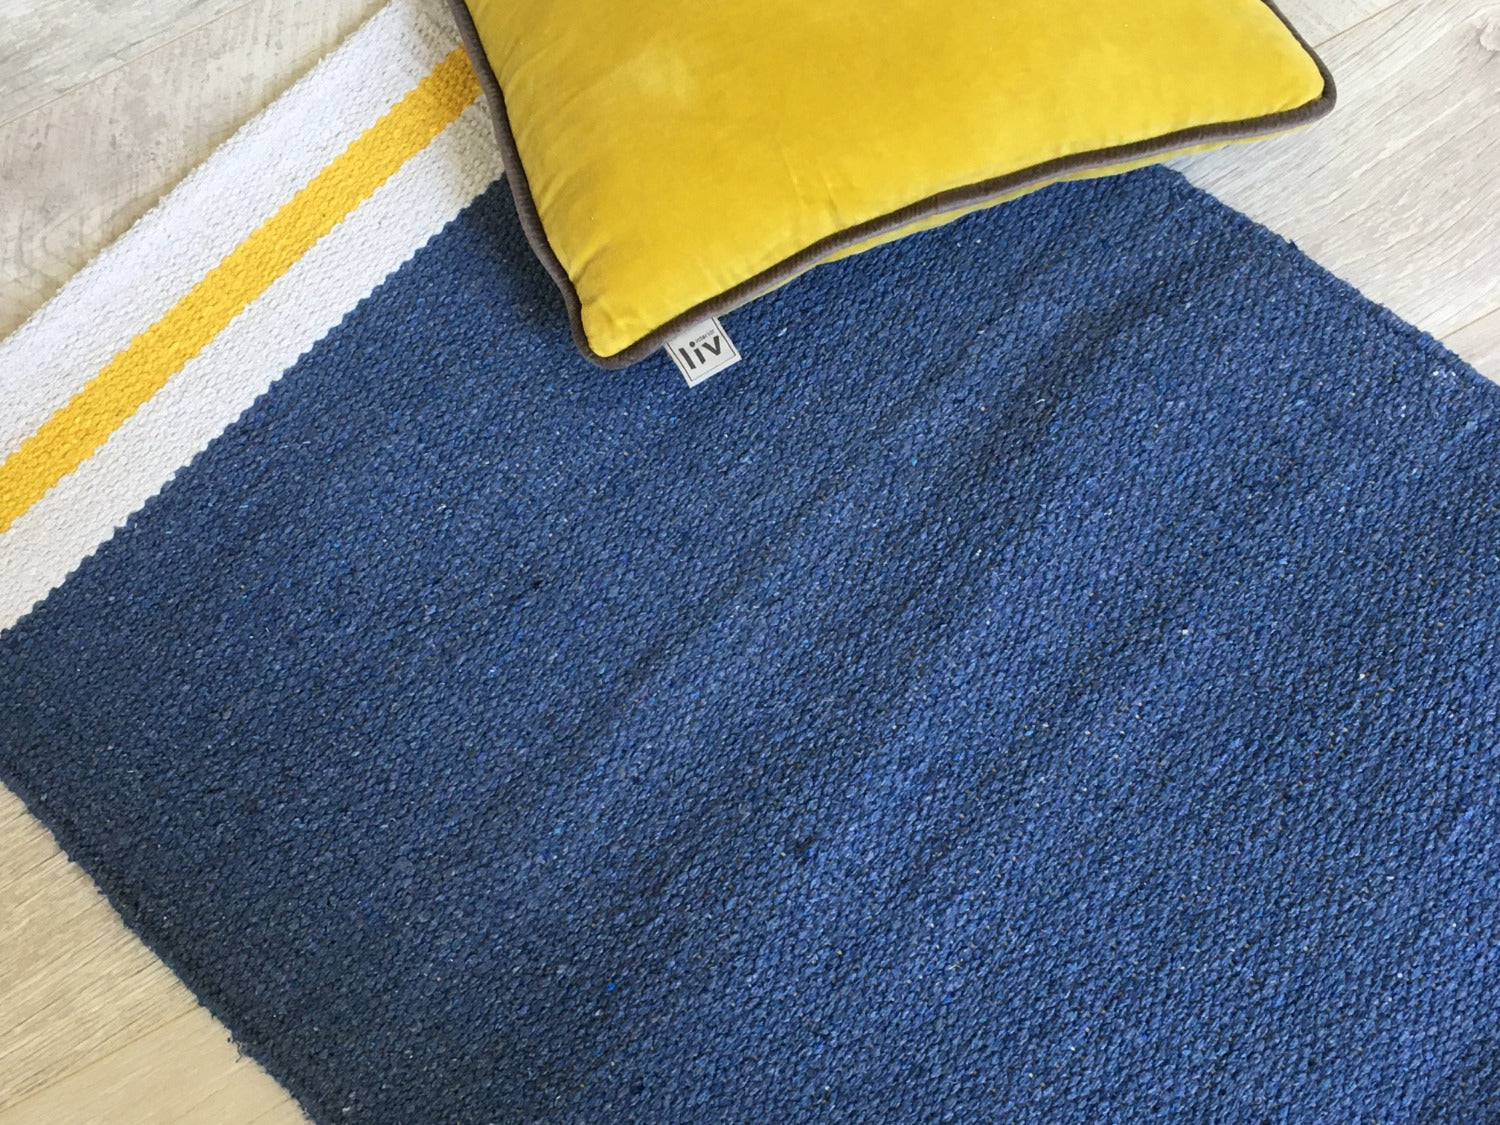 Bari Navy Blue Recycled Cotton Rug